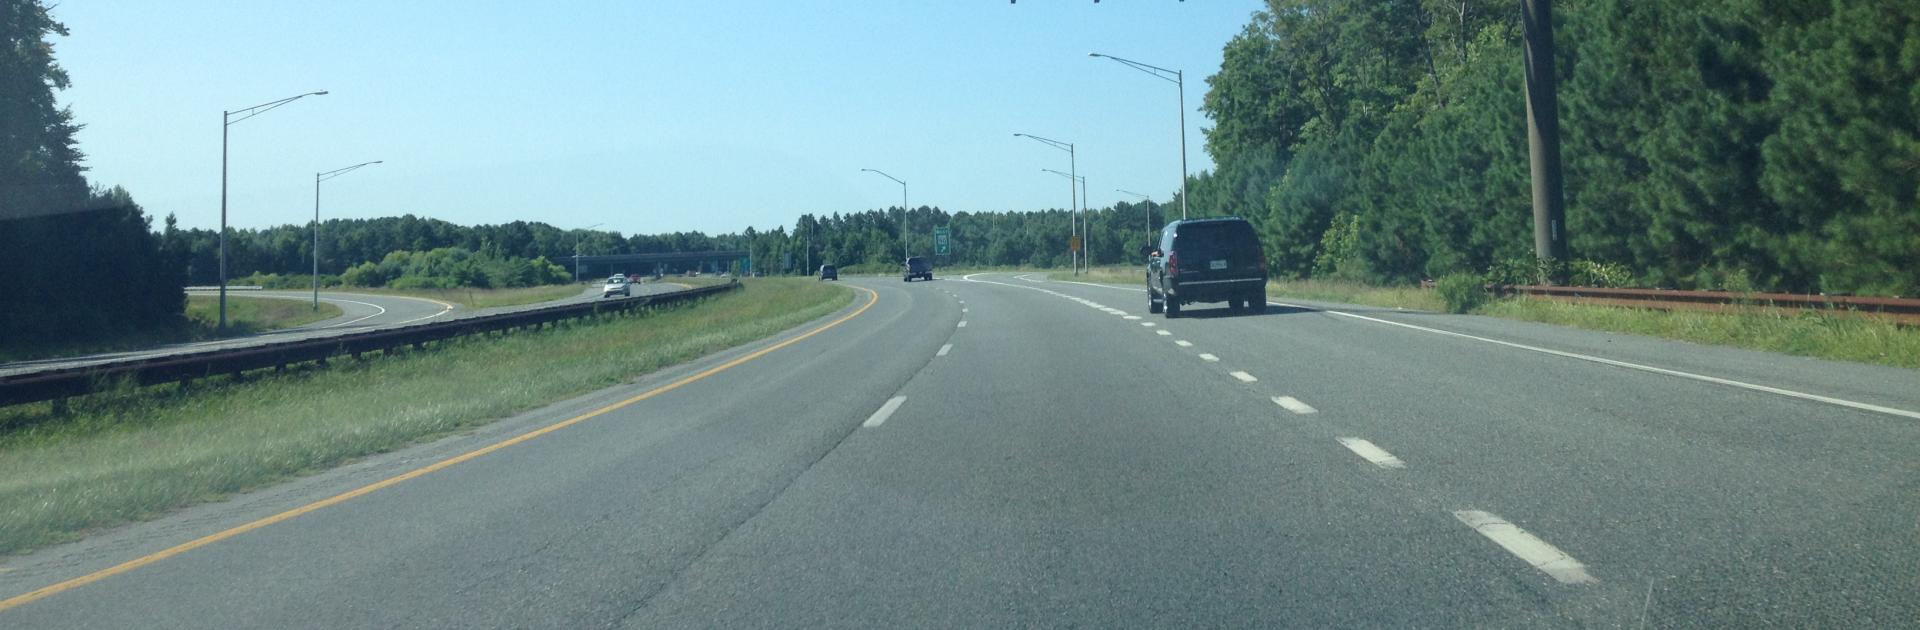 Photo of Maryland Interstate Highway with grassy median